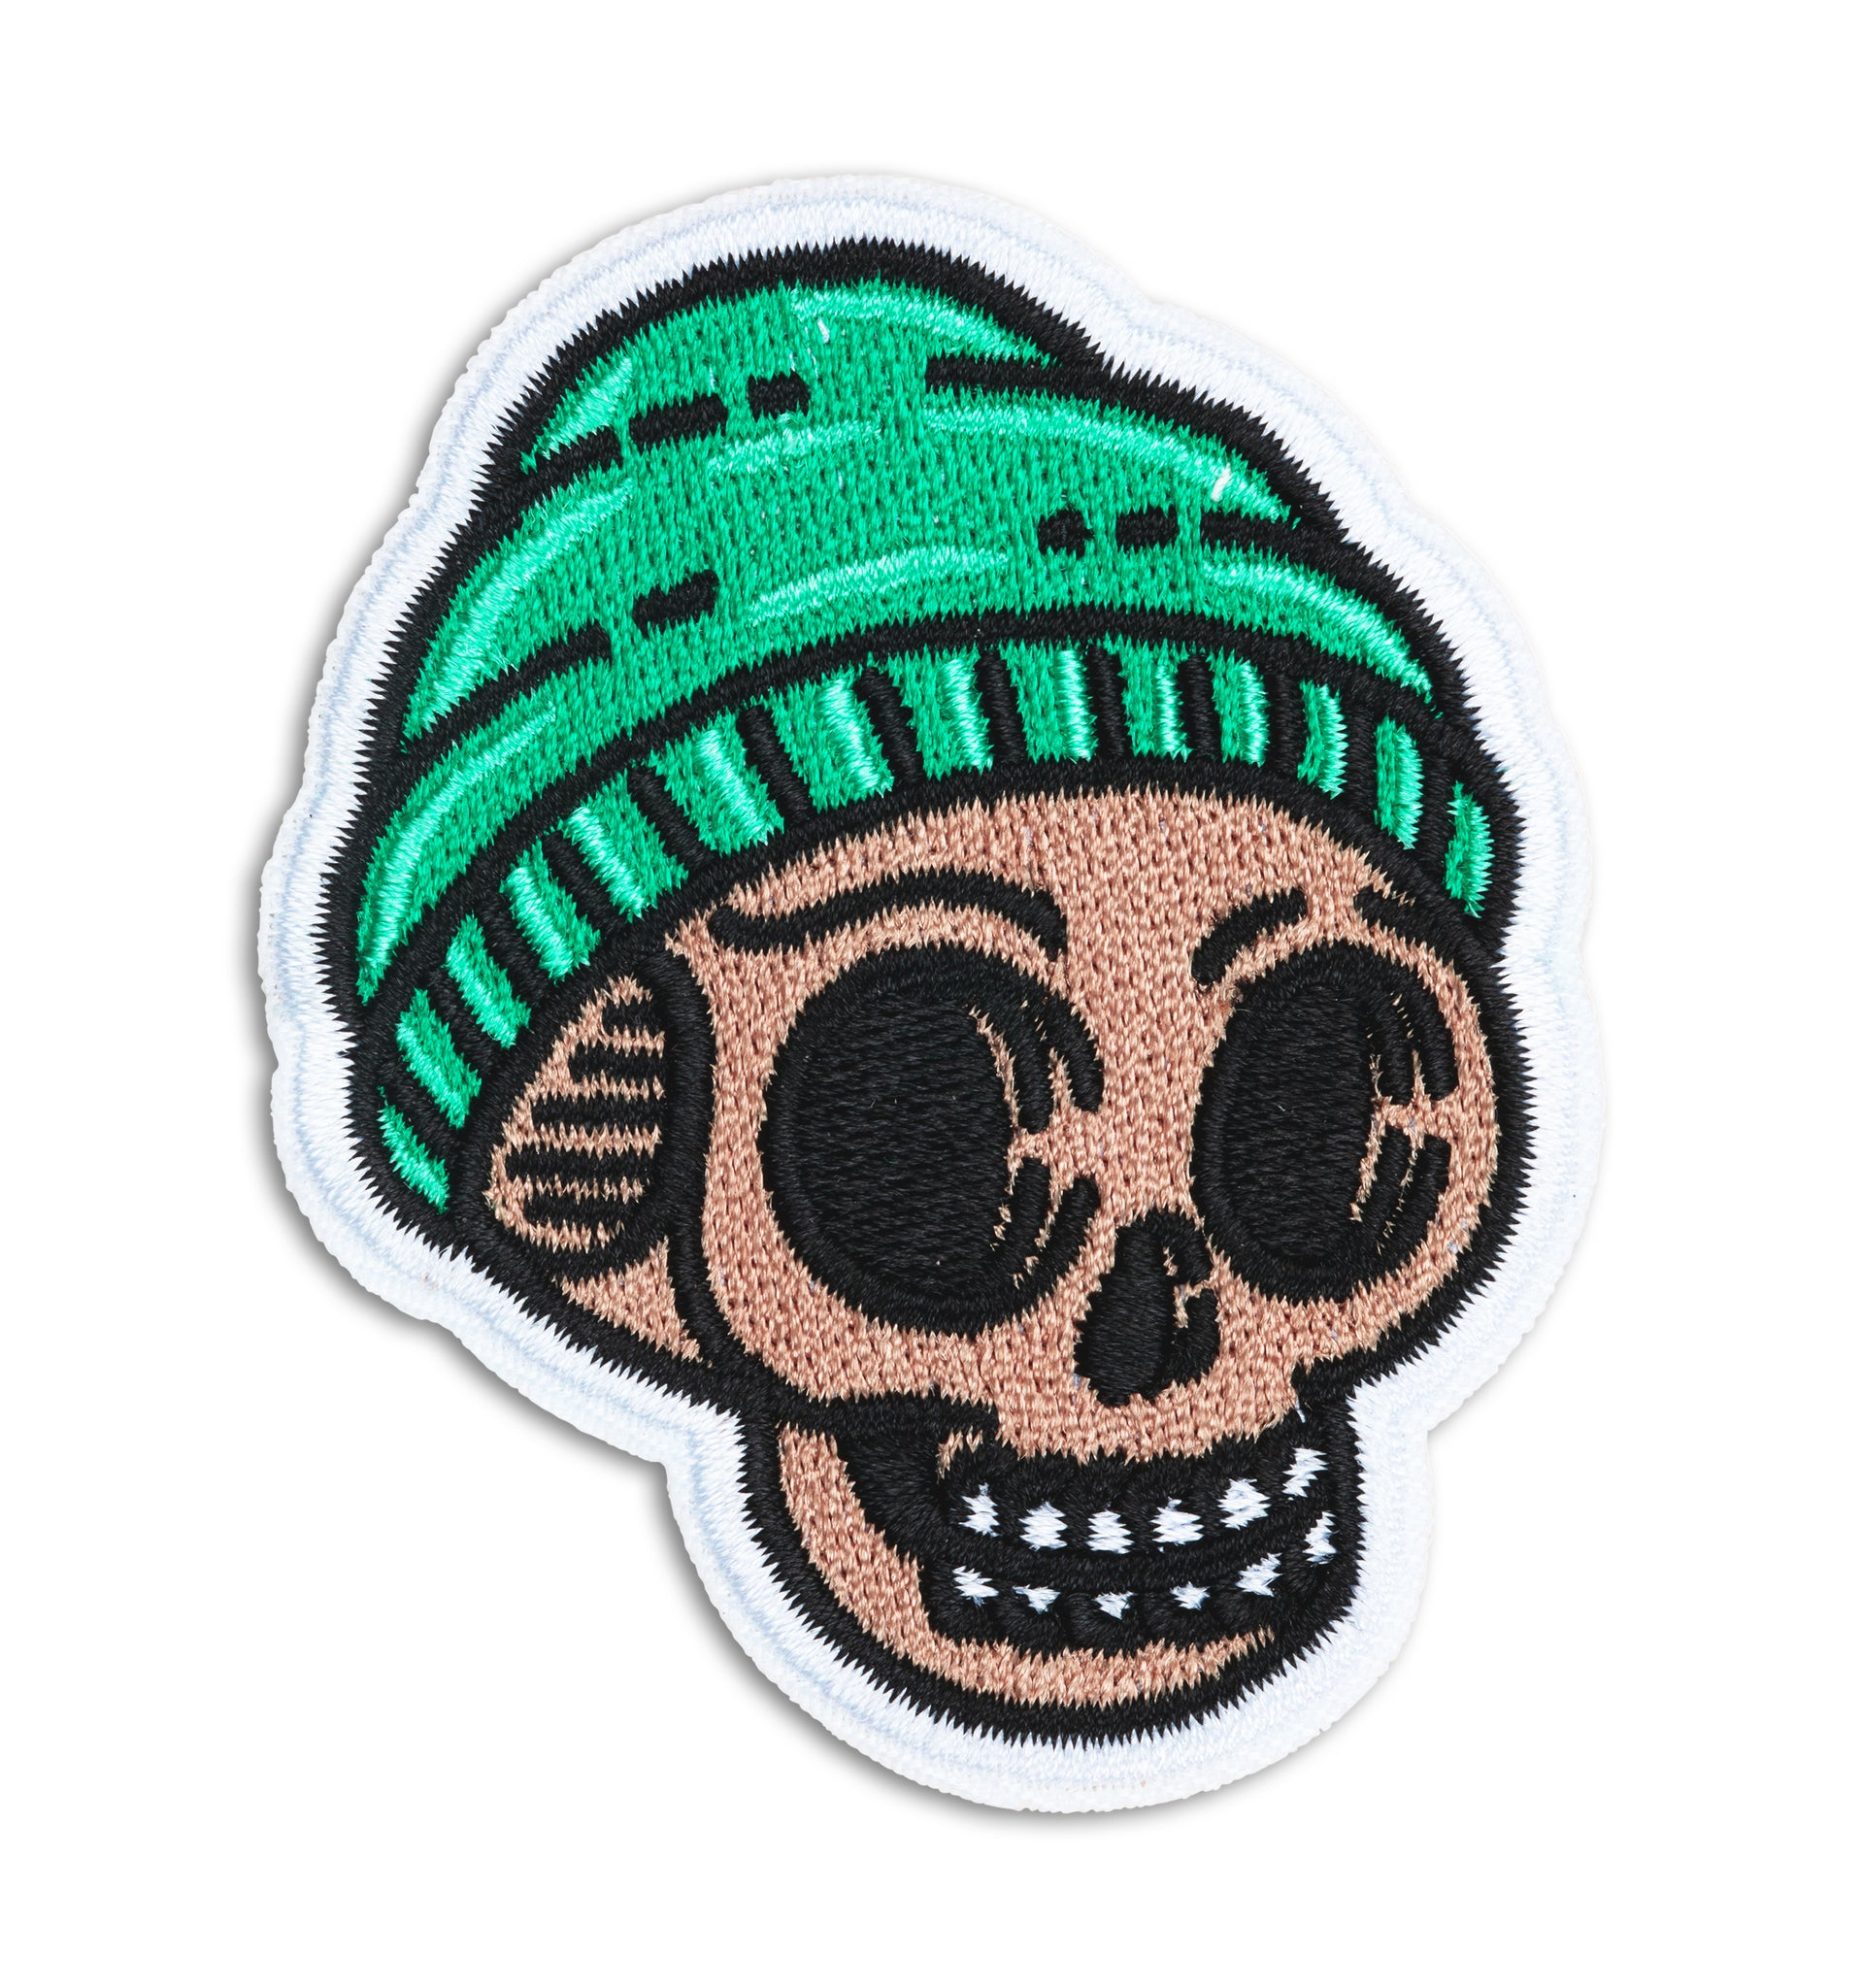 Beanie Man Patch Patch DATA CREW | DataCrew